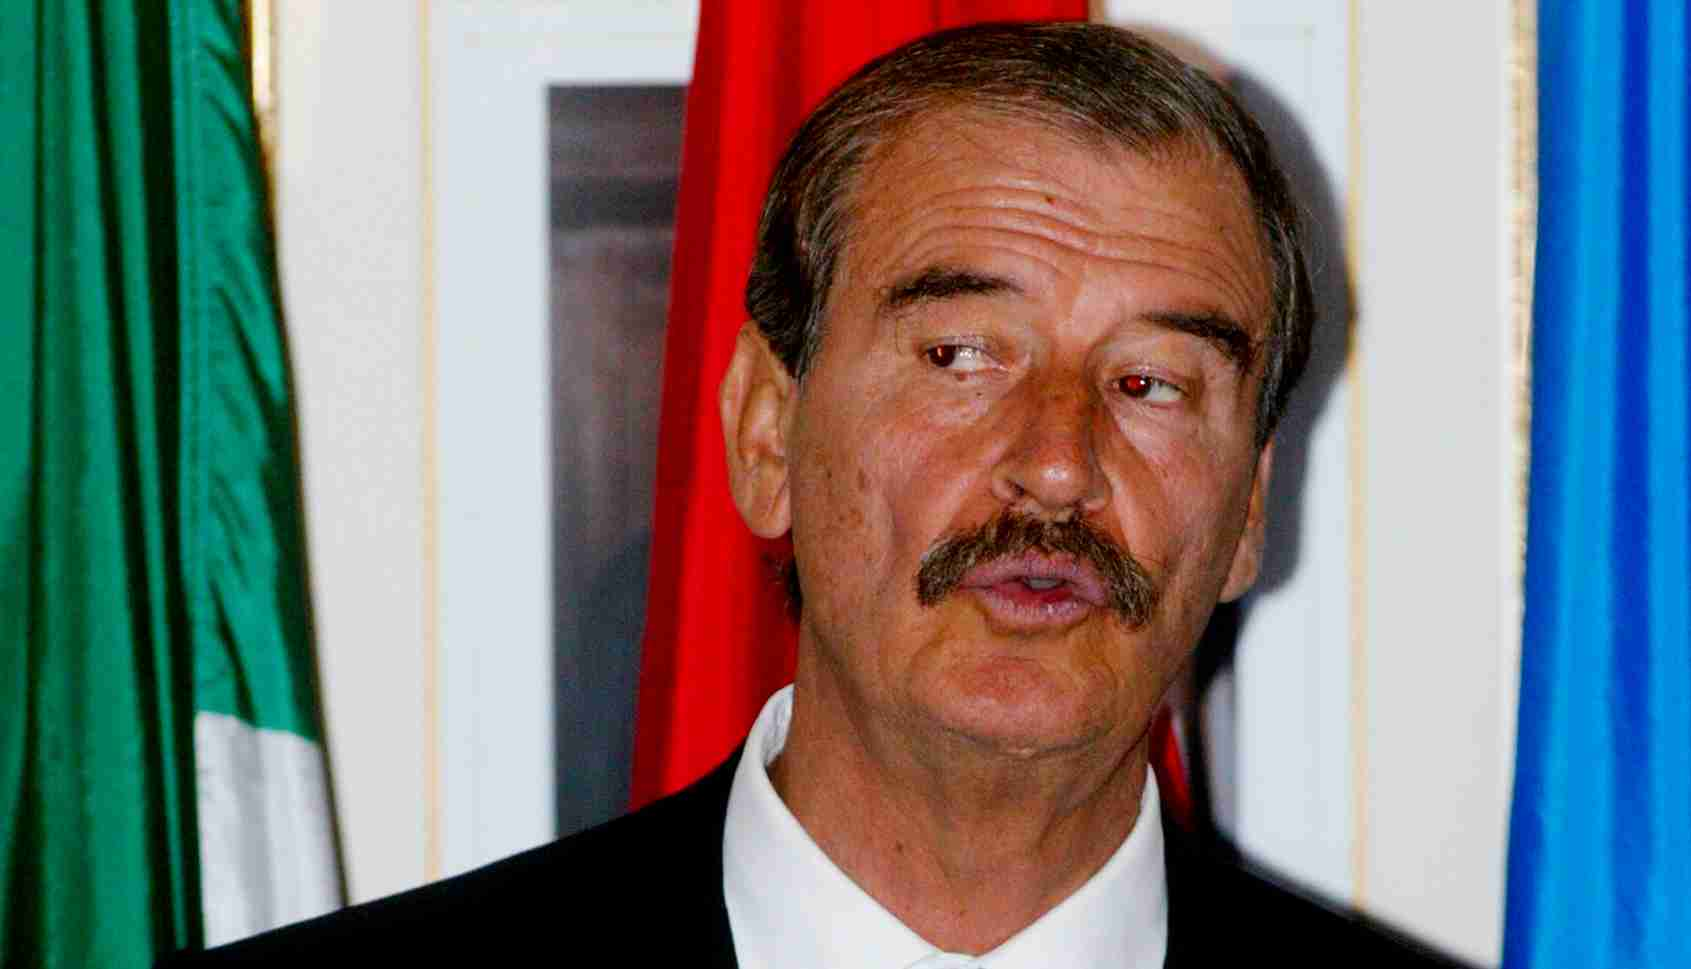 Mexican President Vicente Fox Quesada speaks to gas and oil producers at a luncheon in Calgary, September 29, 2005. The Mexican President is in Calgary for the day before heading off to Vancouver. REUTERS/Patrick Price